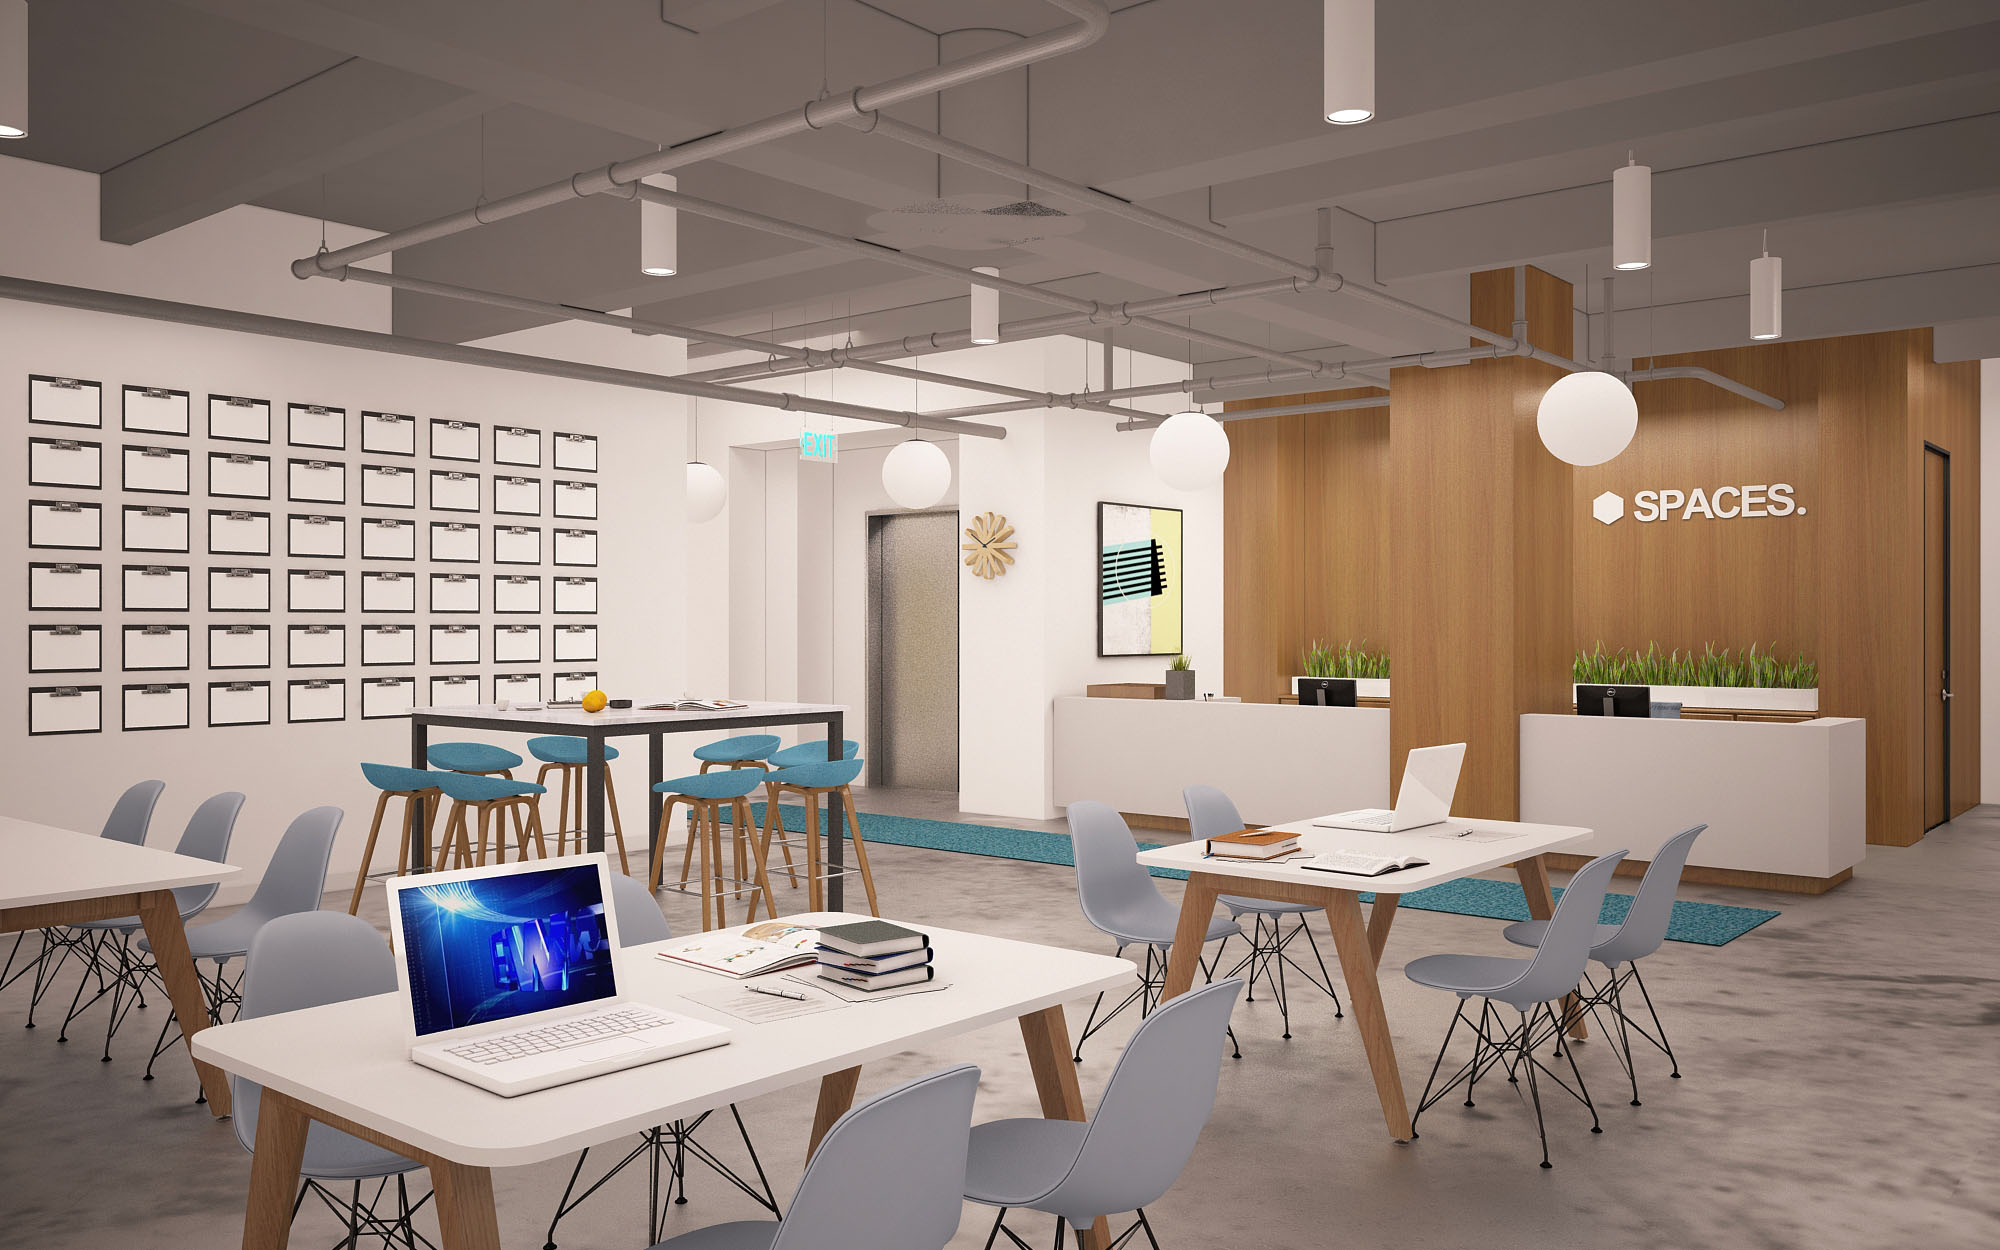 Skender Starts Interior Construction of Chicago HQ of Coworking Firm Spaces